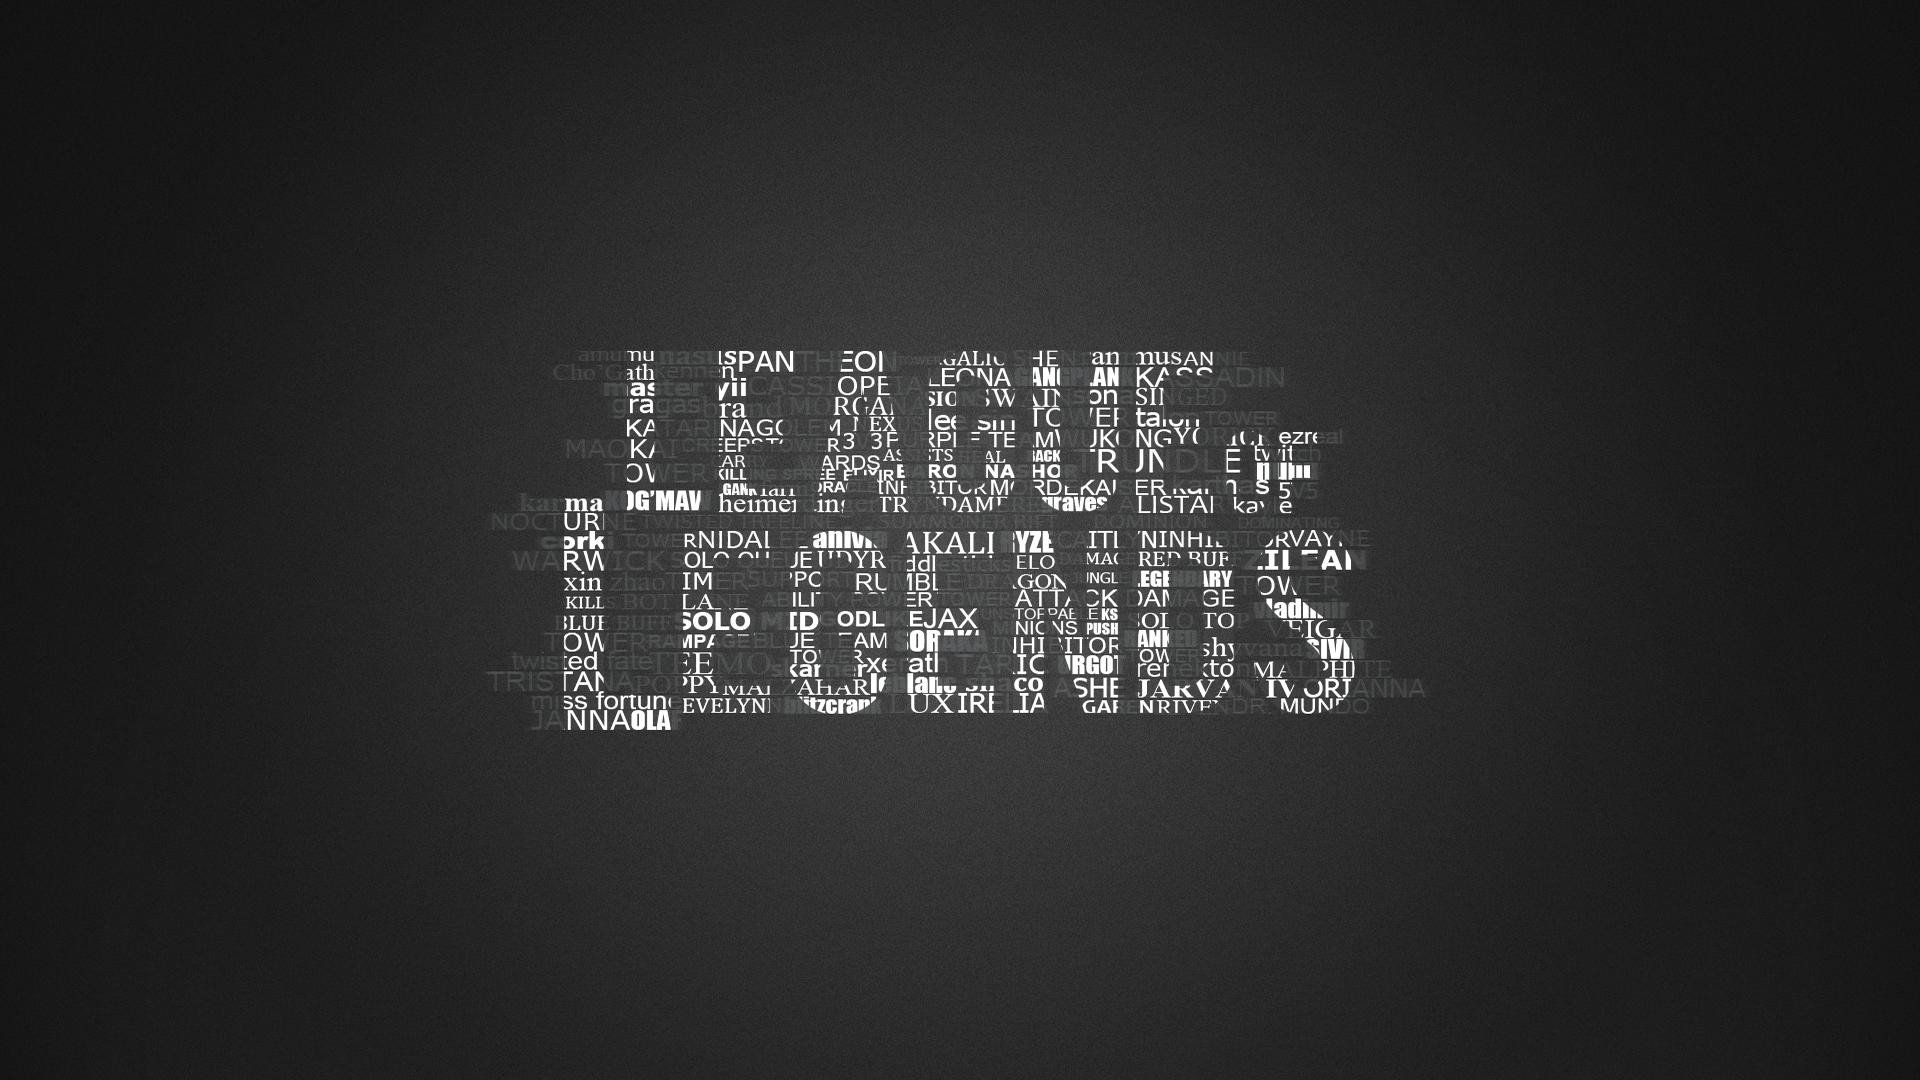 45 hd lol wallpaper and background league of legends free download hd lol wallpaper and background 12 voltagebd Images